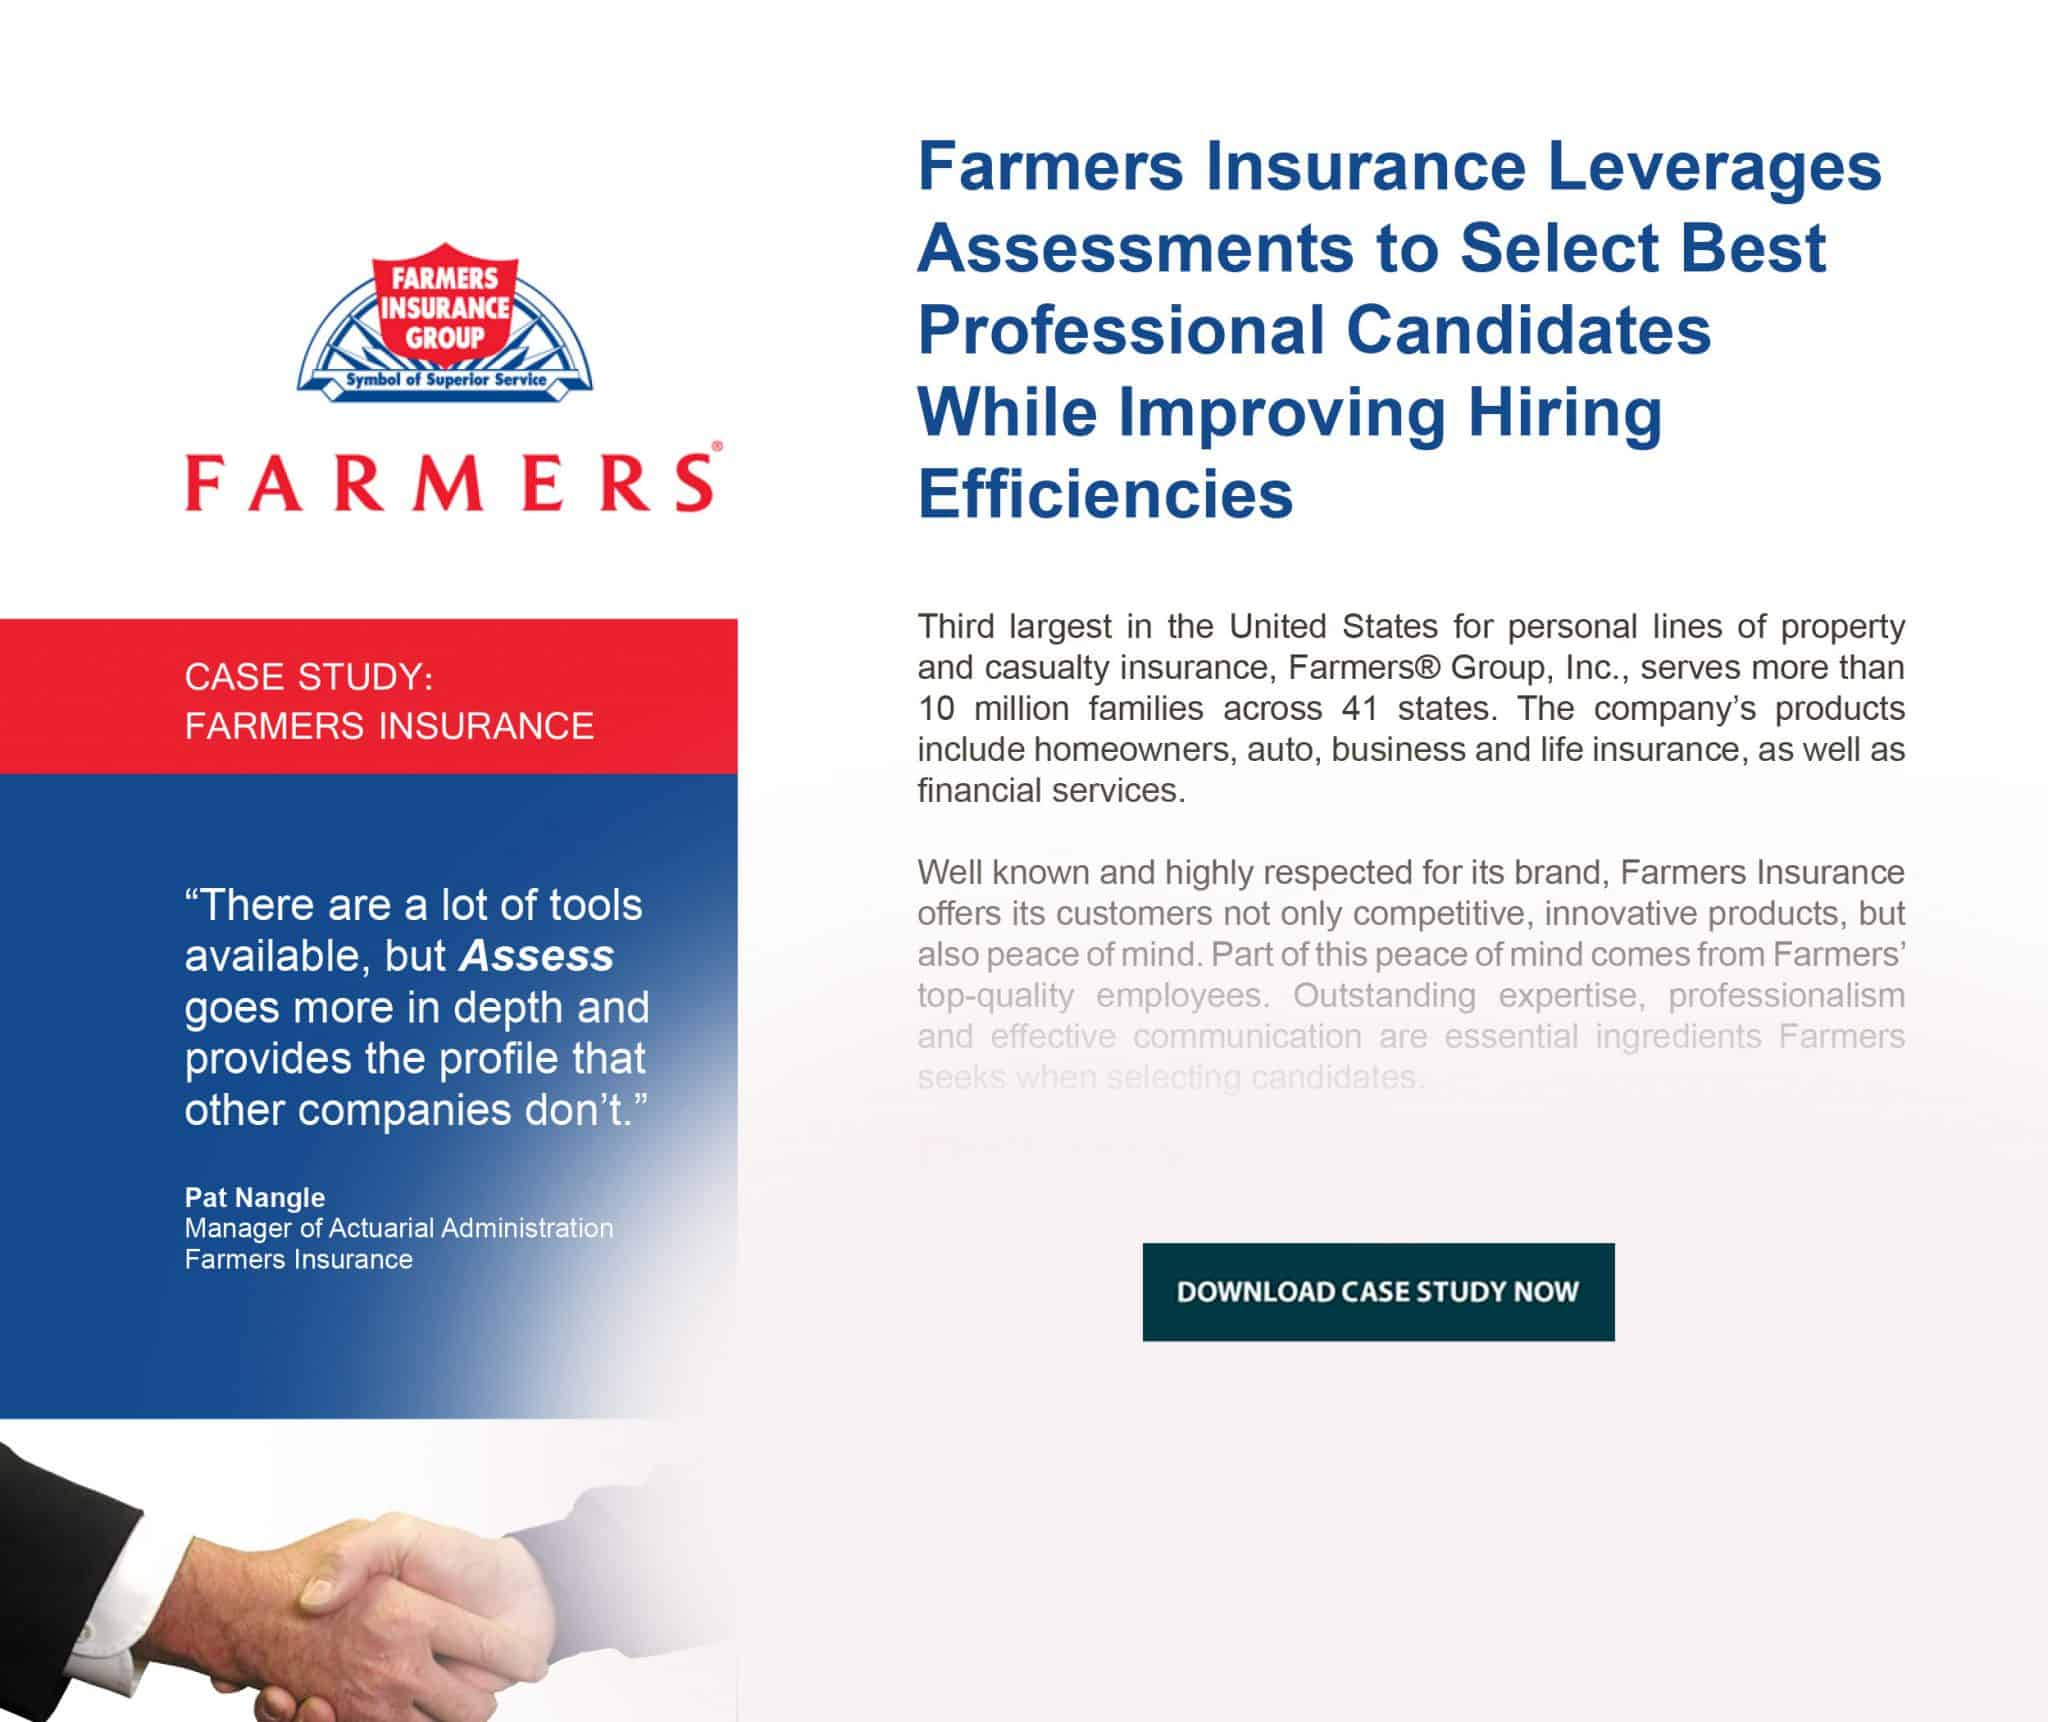 case-study-farmers-insurance-fade_button